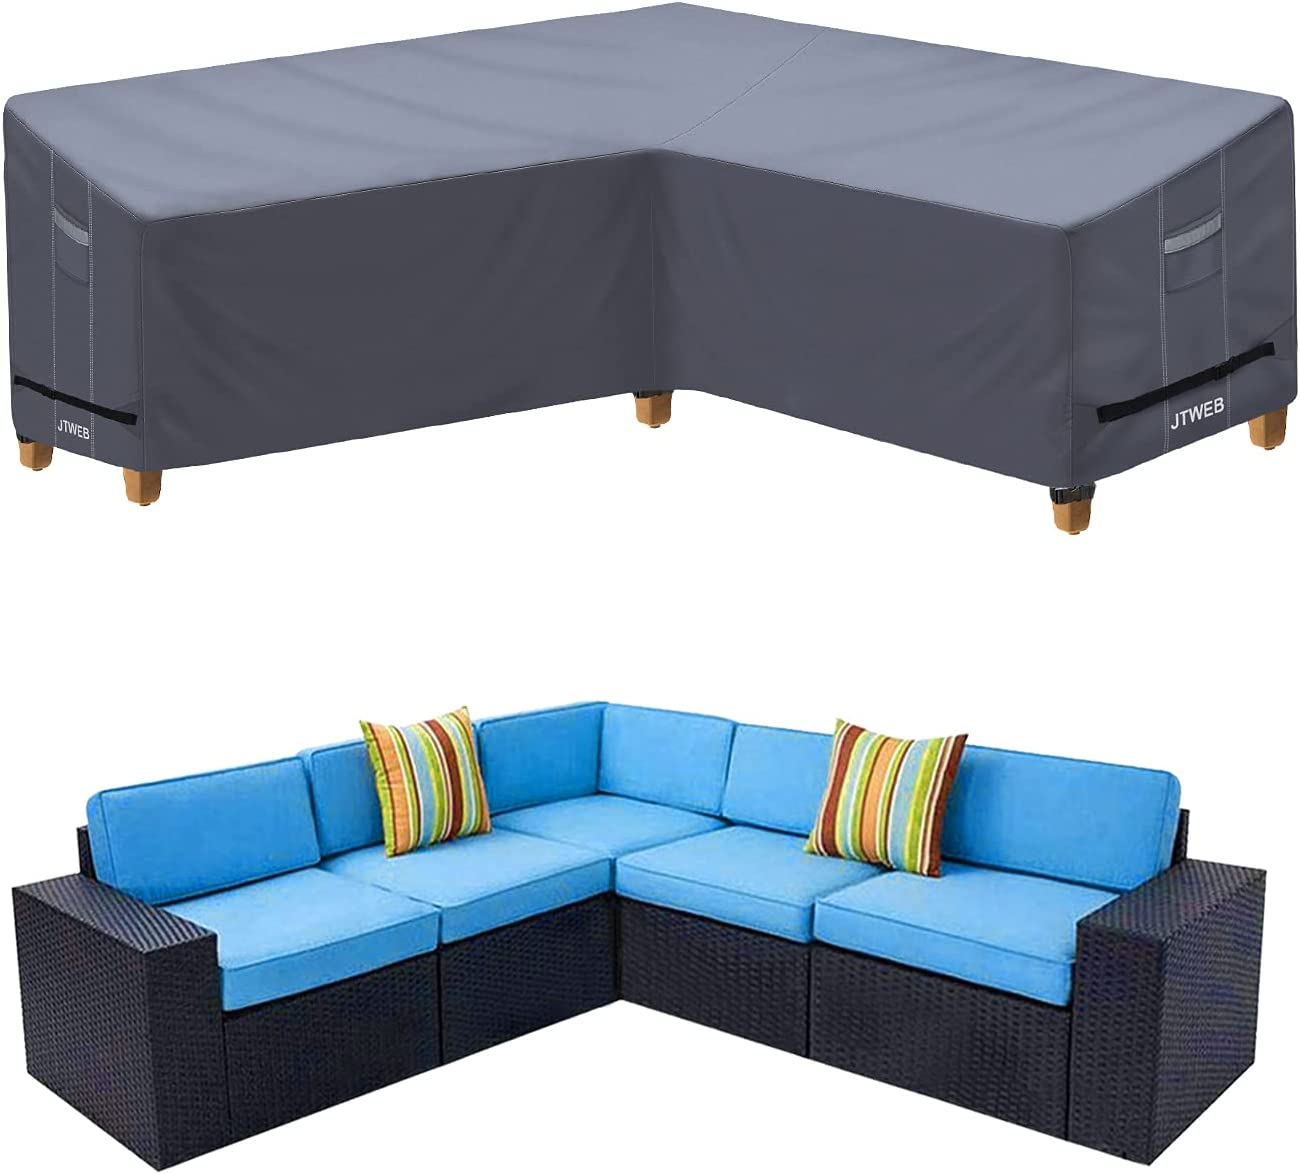 Heavy Duty Outdoor Sectional Sofa Cover , 100